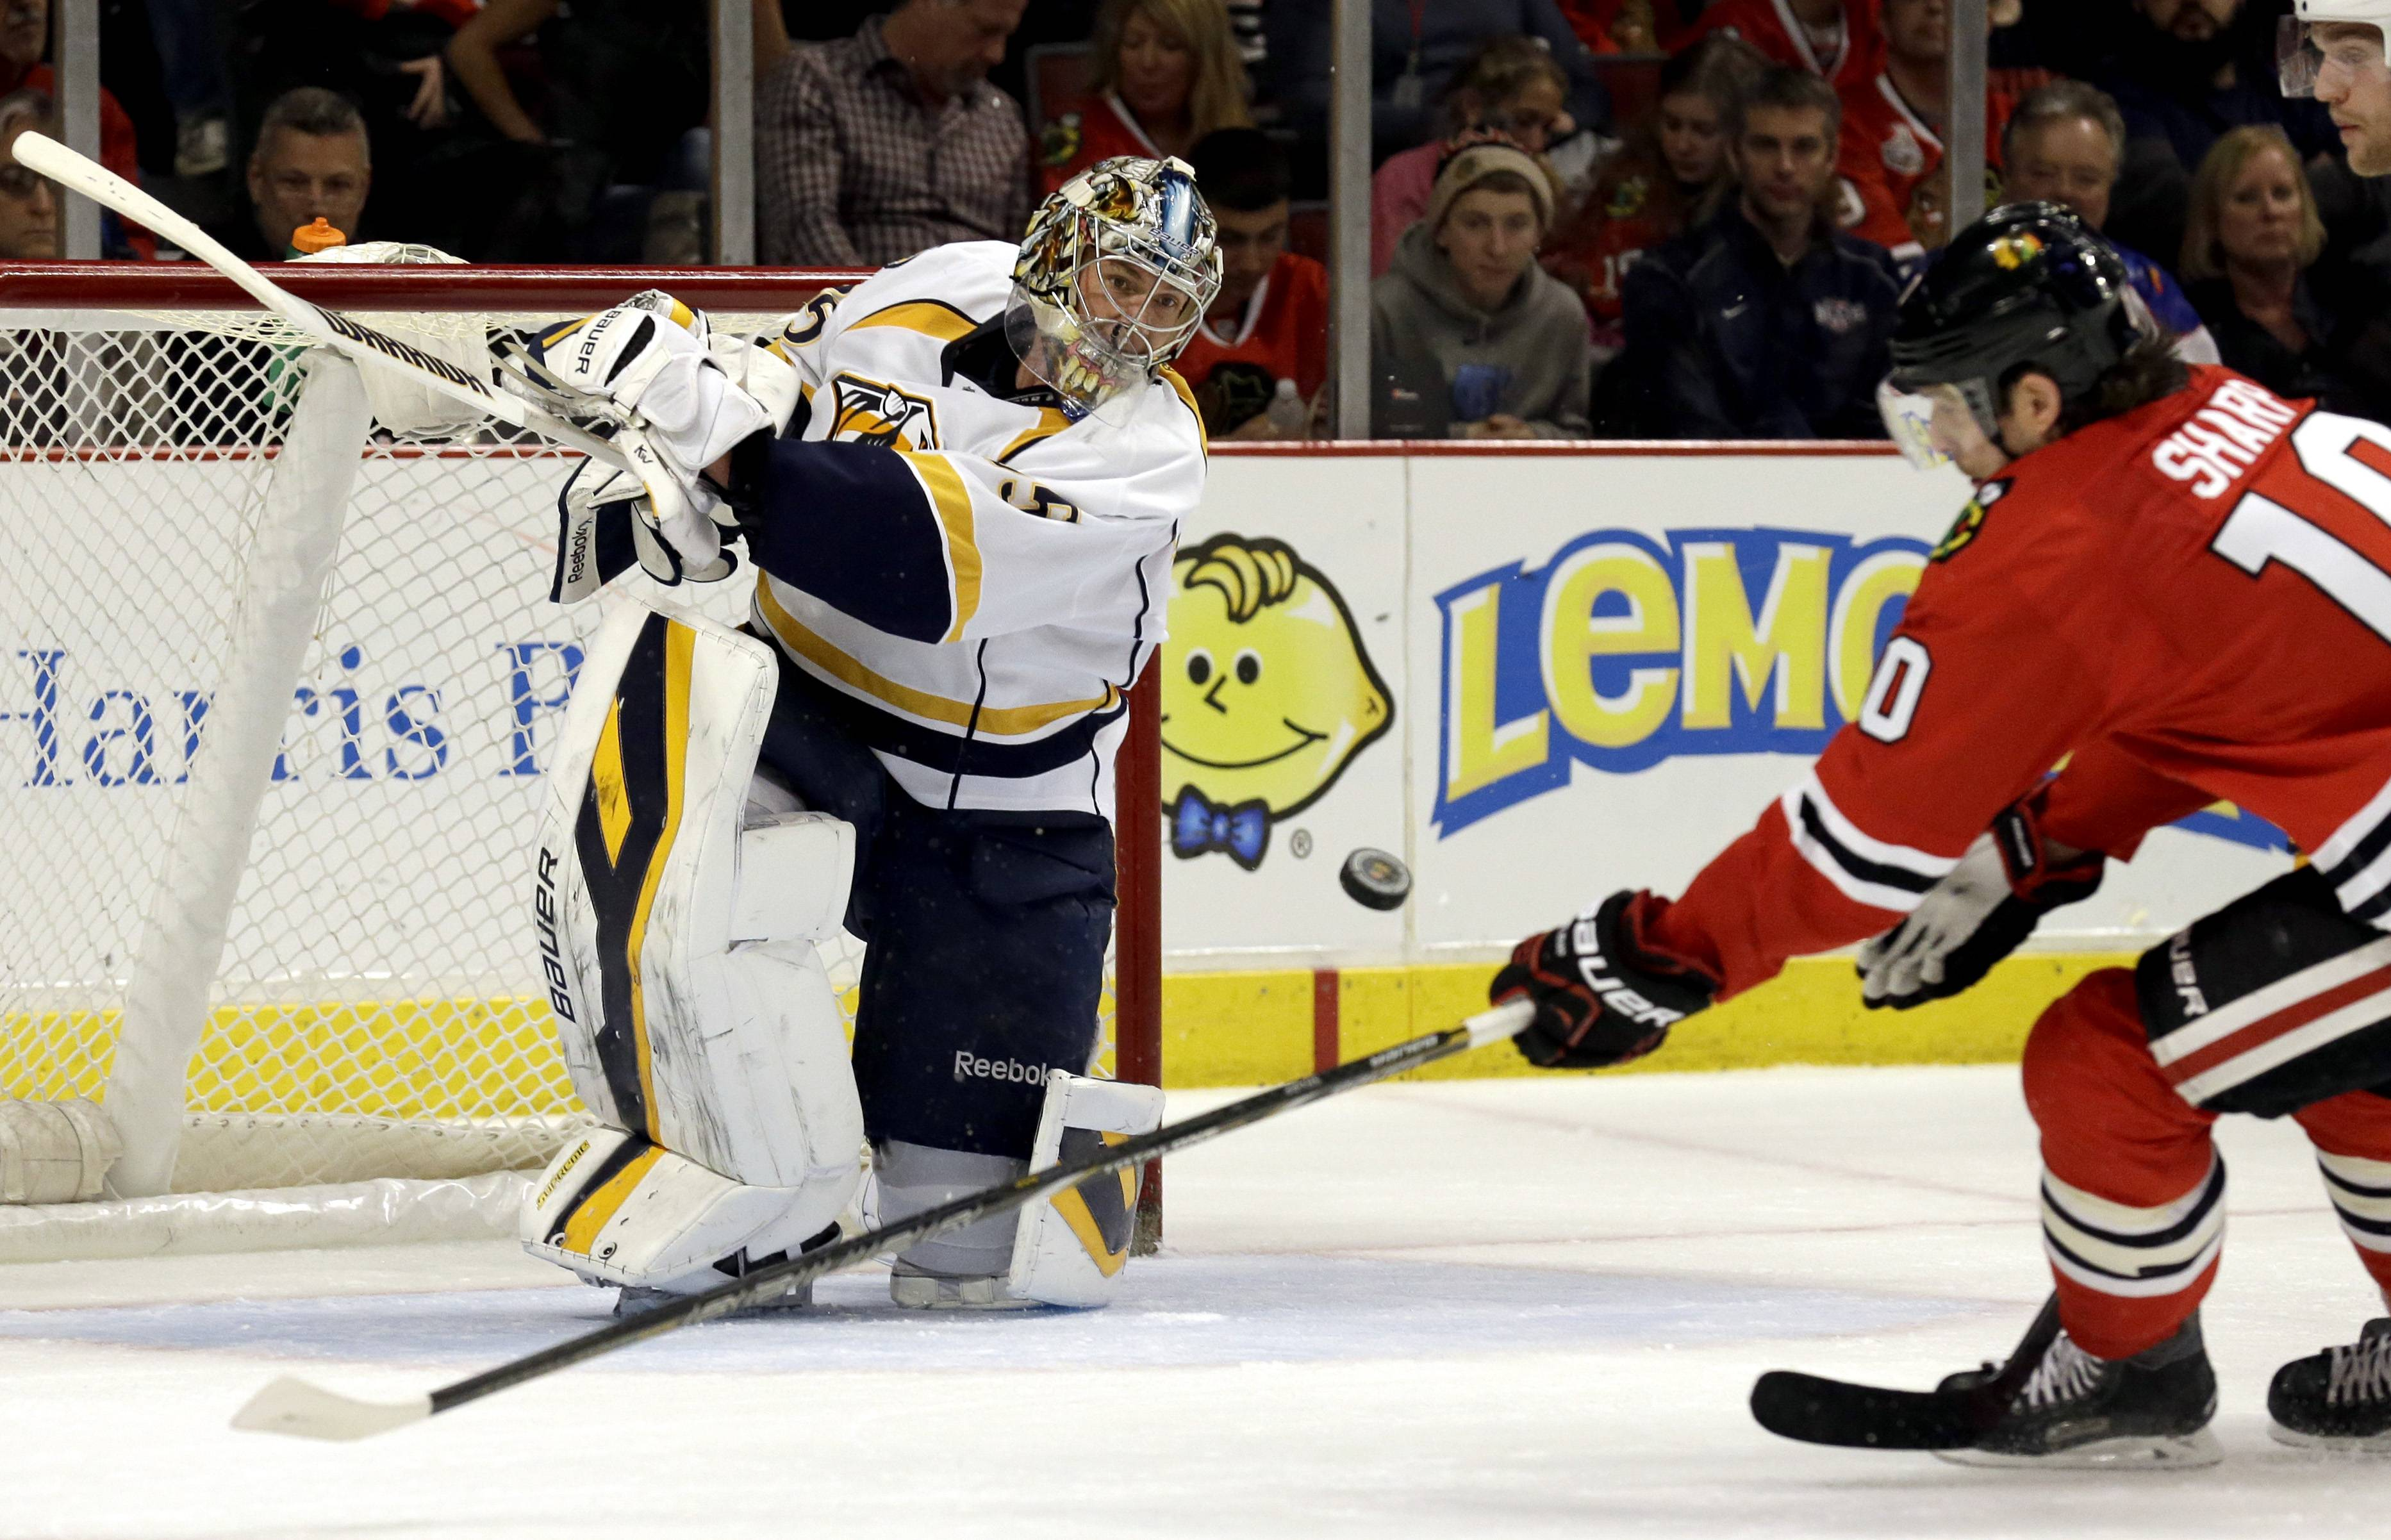 Nashville Predators goalie Pekka Rinne (35), left, blocks a shot by Chicago Blackhawks' Patrick Sharp (10) during the second period of an NHL hockey game in Chicago, Sunday, March 23, 2014.